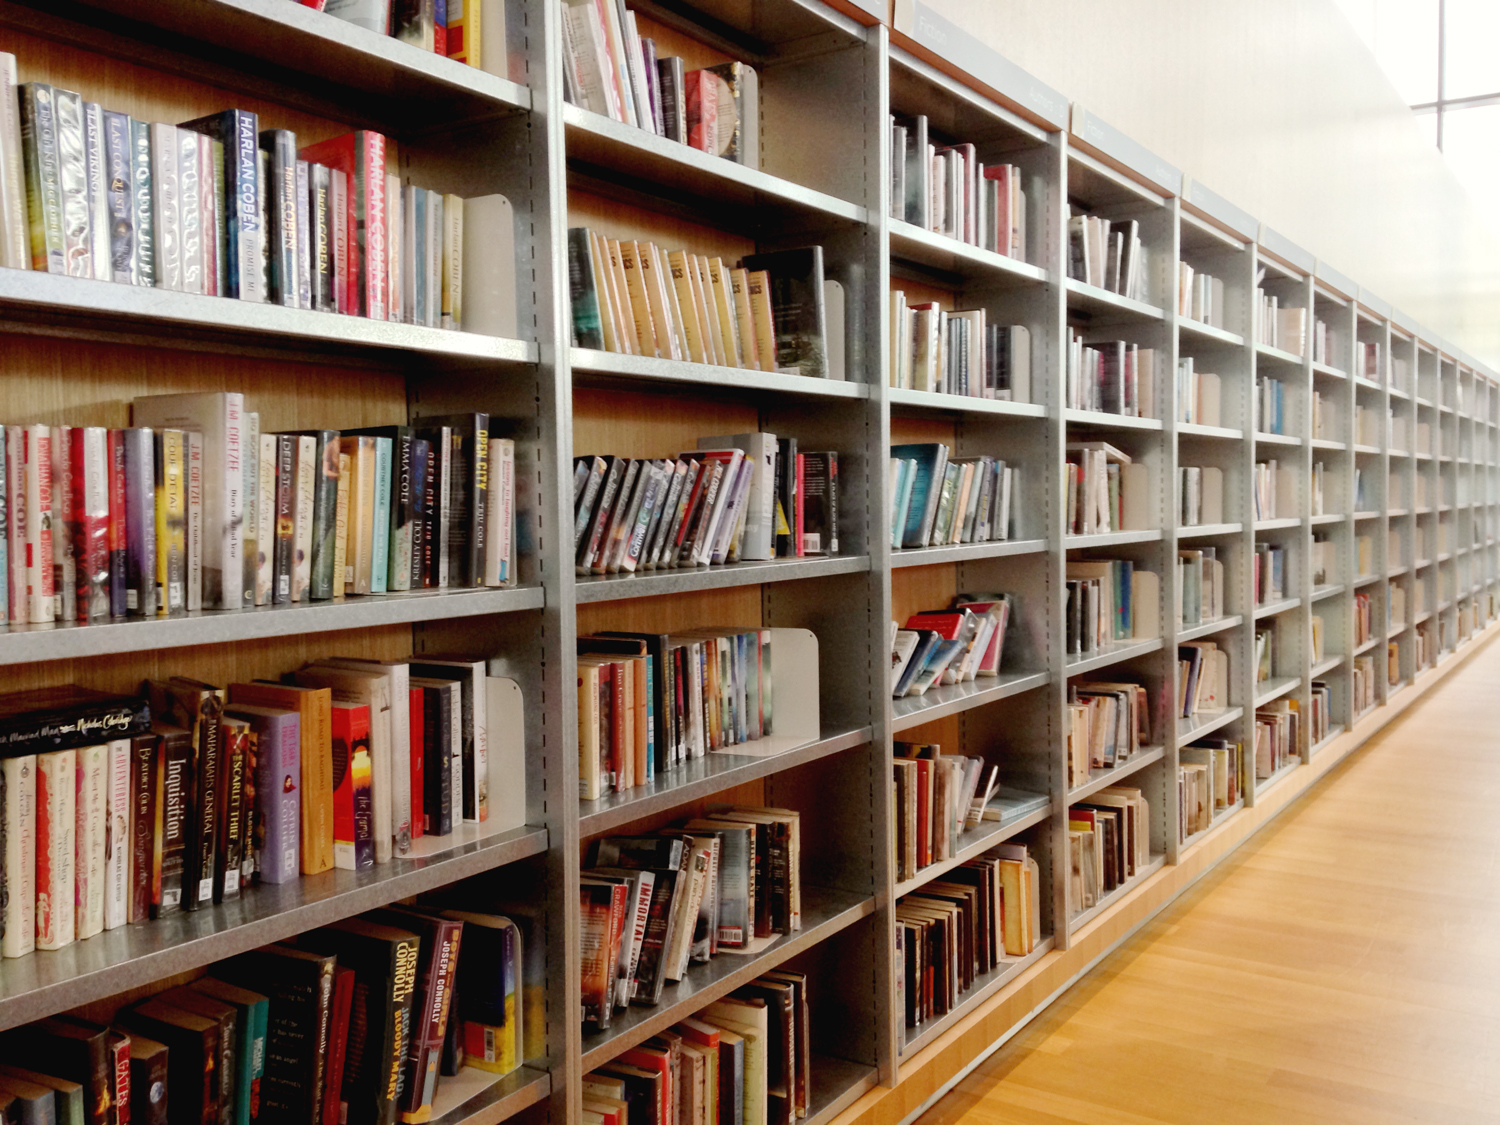 how to search books in the library